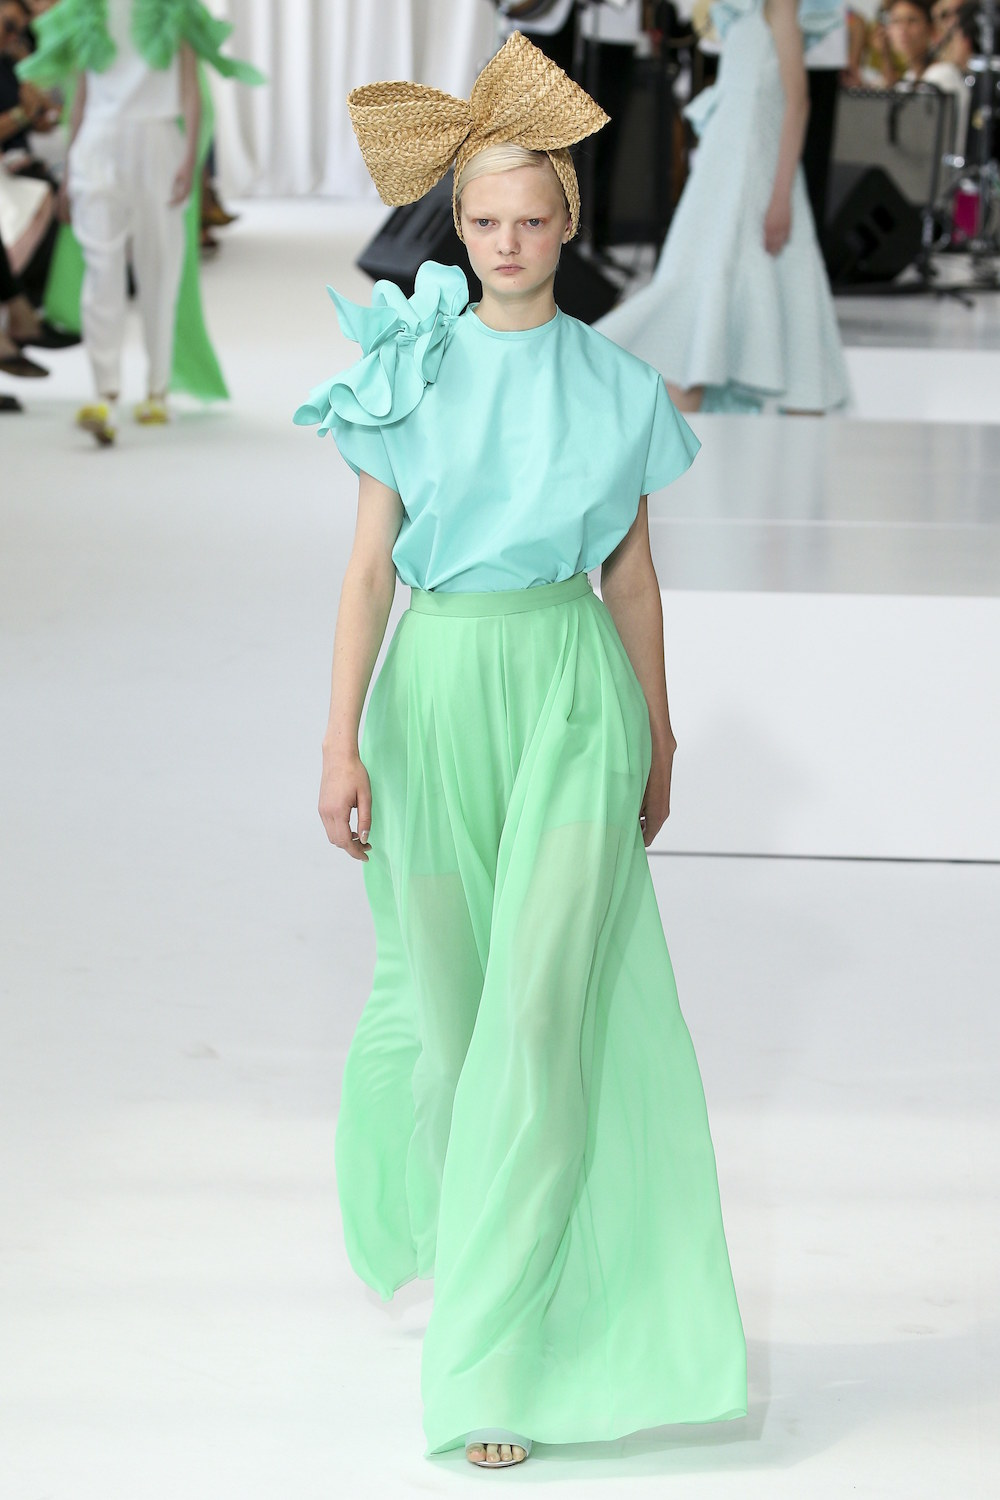 Cohler's boutique in Jackson Square is the only place in the city to shop for certain designers, like Delpozo above.